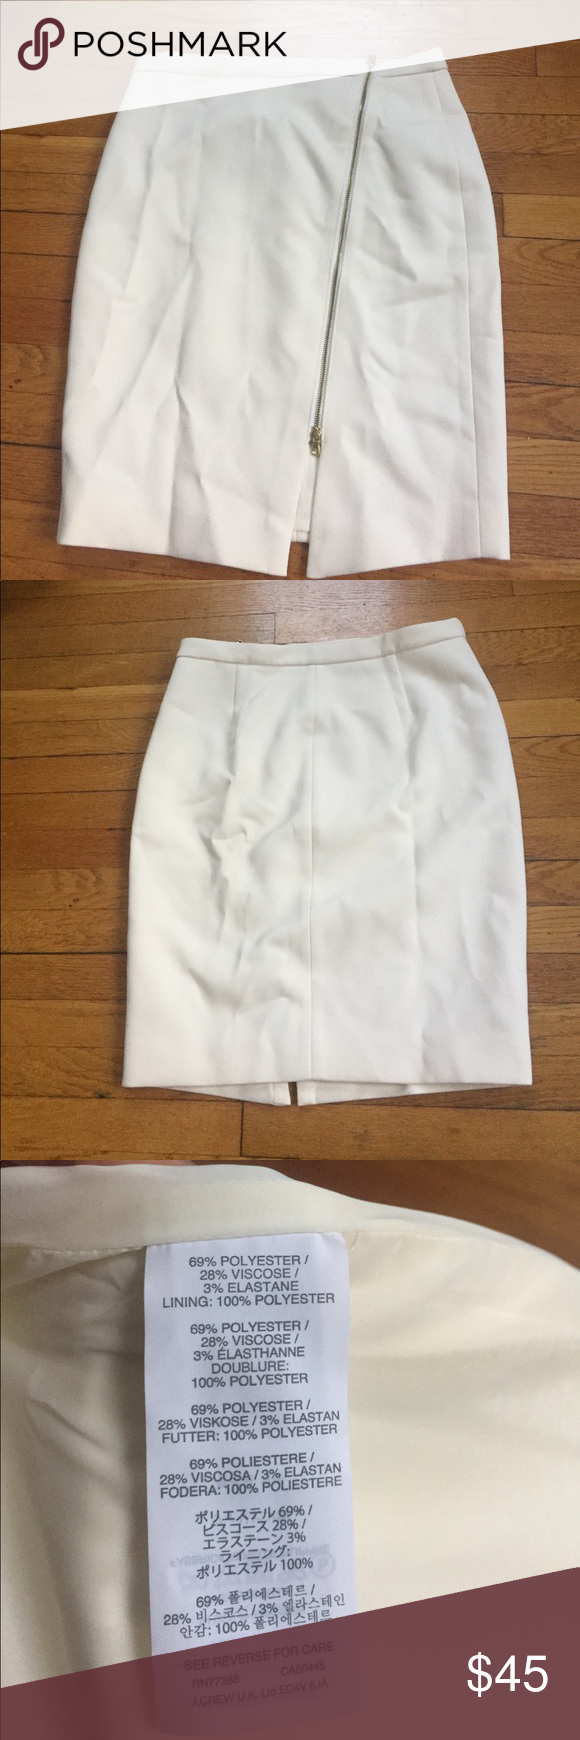 J.Crew Pencil Skirt - Off White Zip Pencil Skirt in Off White. Never Worn. Will be mailed in original packaging. Size 12. Zipper in the front. Very stylish. J. Crew Skirts Pencil